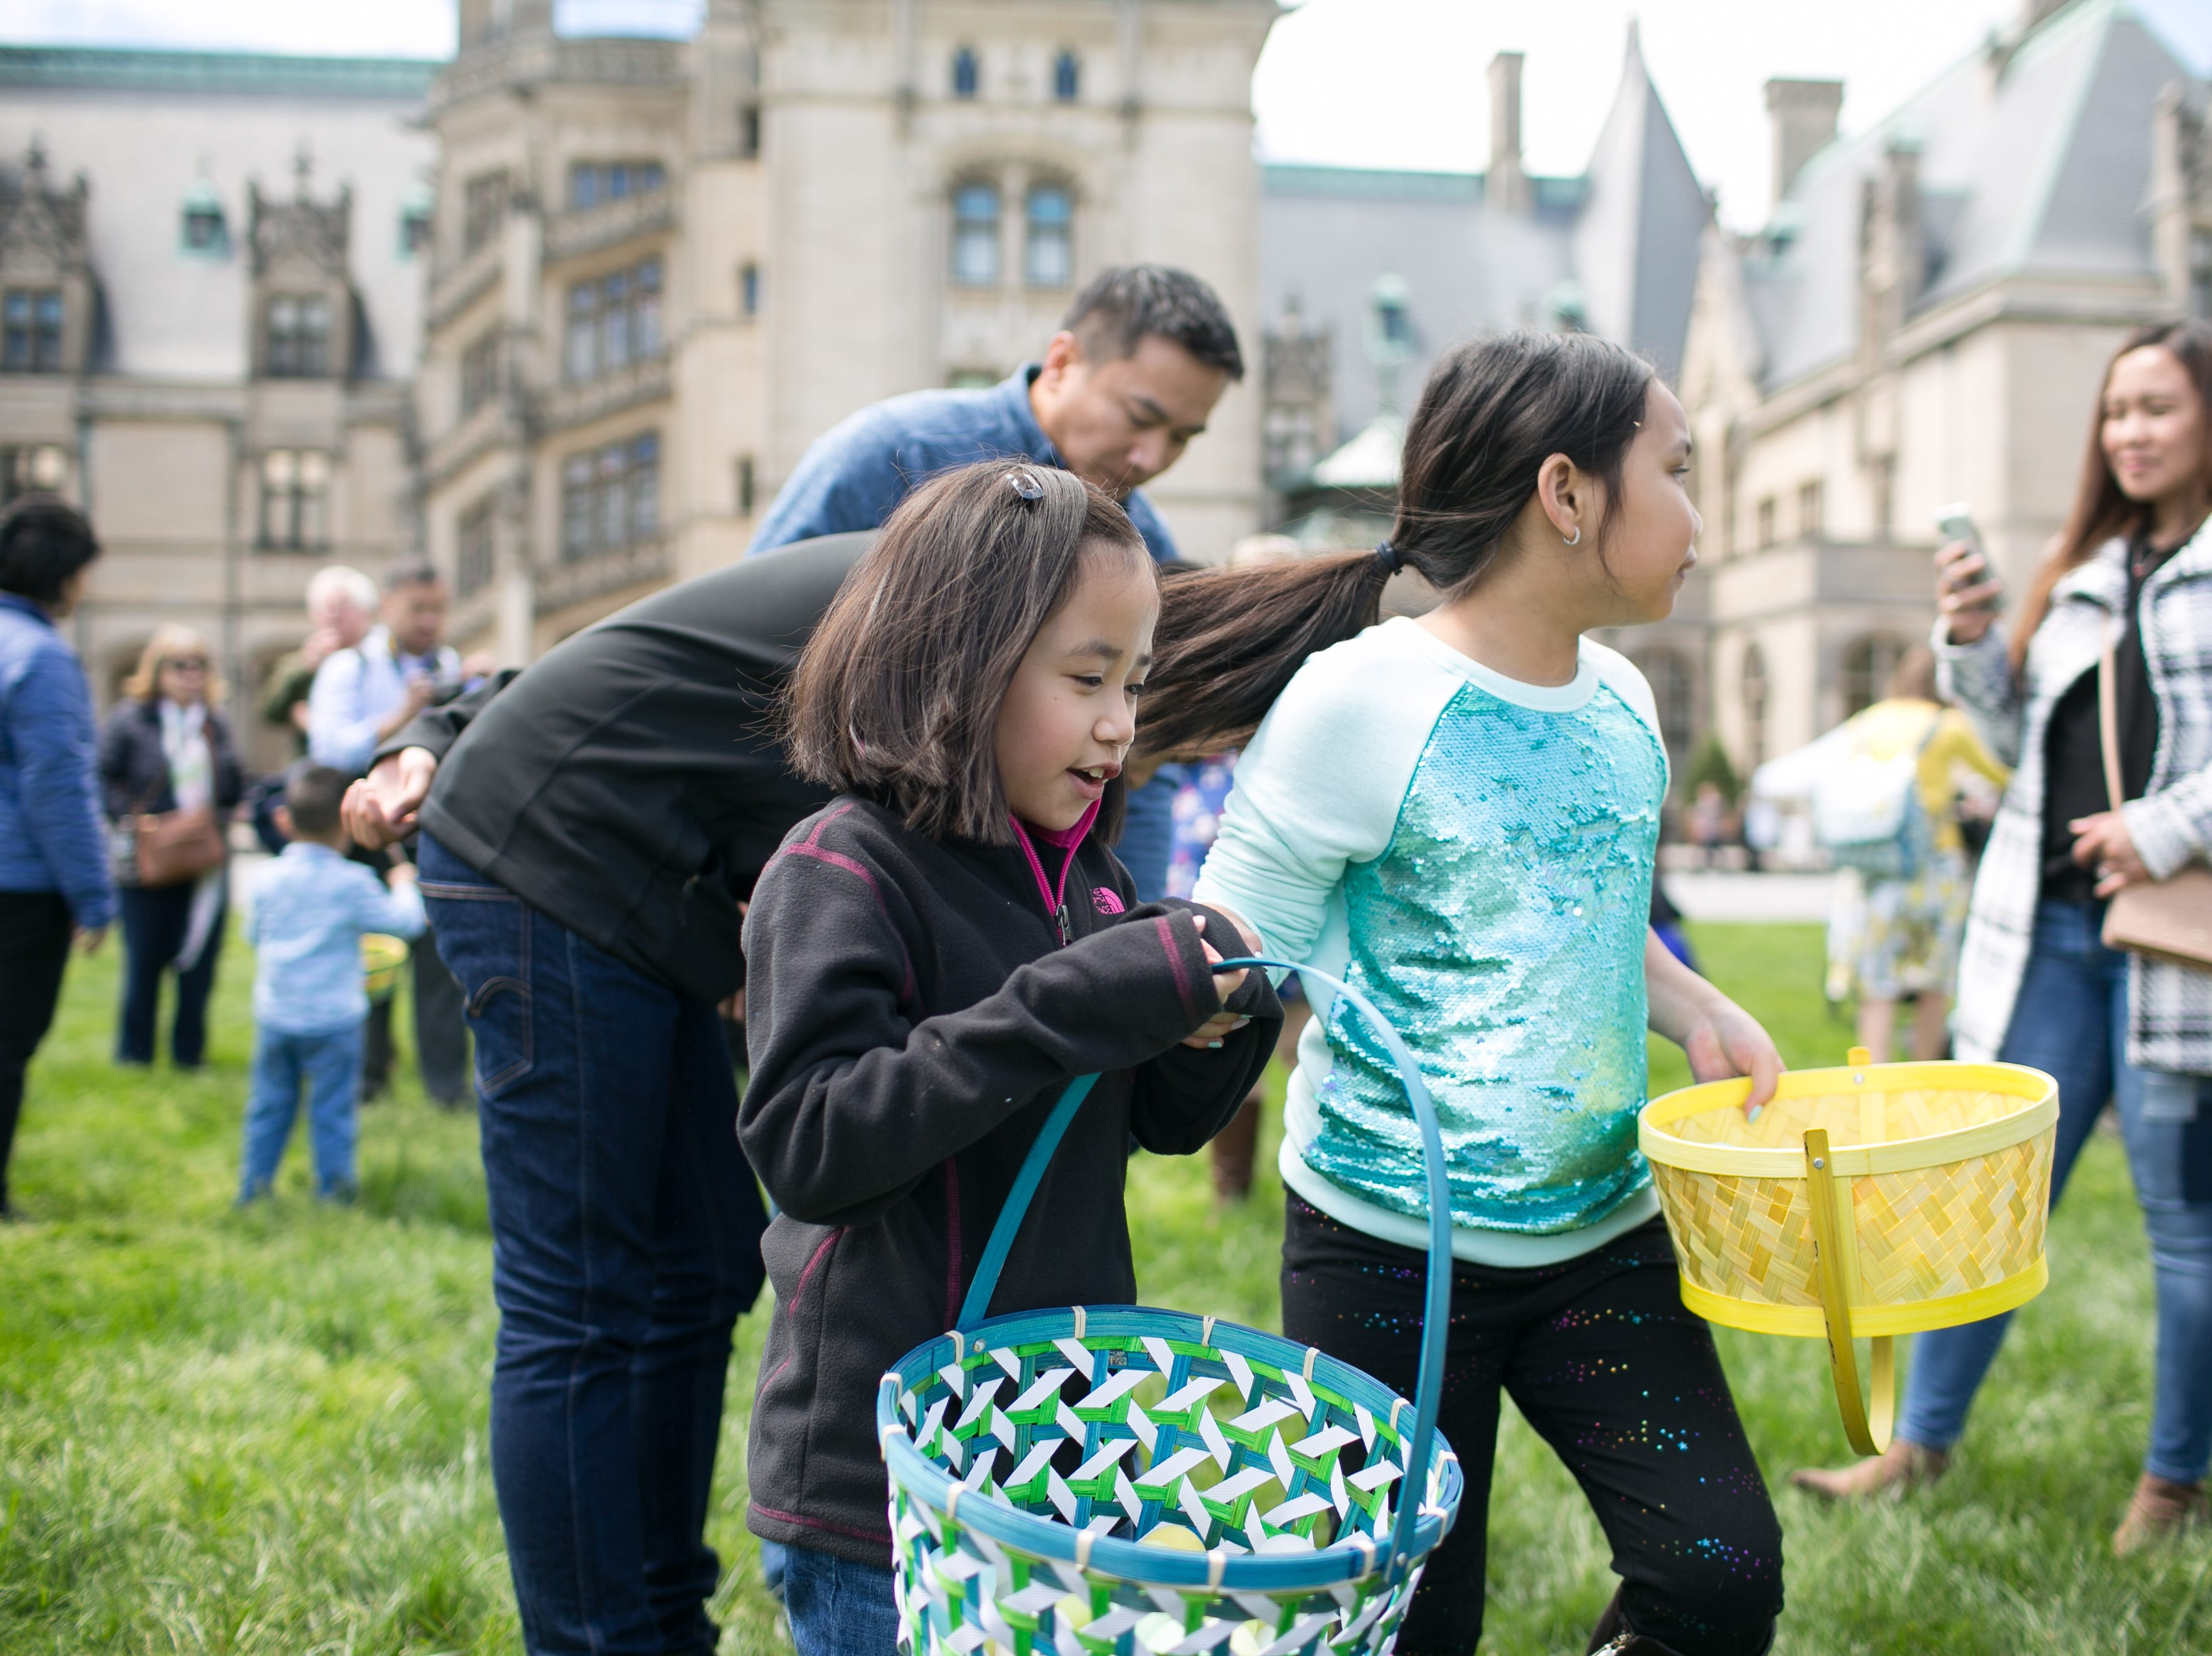 Scenes from Biltmore Estate's annual Easter egg hunt on April 21, 2019. The hunt is one of the Southeast's largest, with hundreds of children ages 2–9.